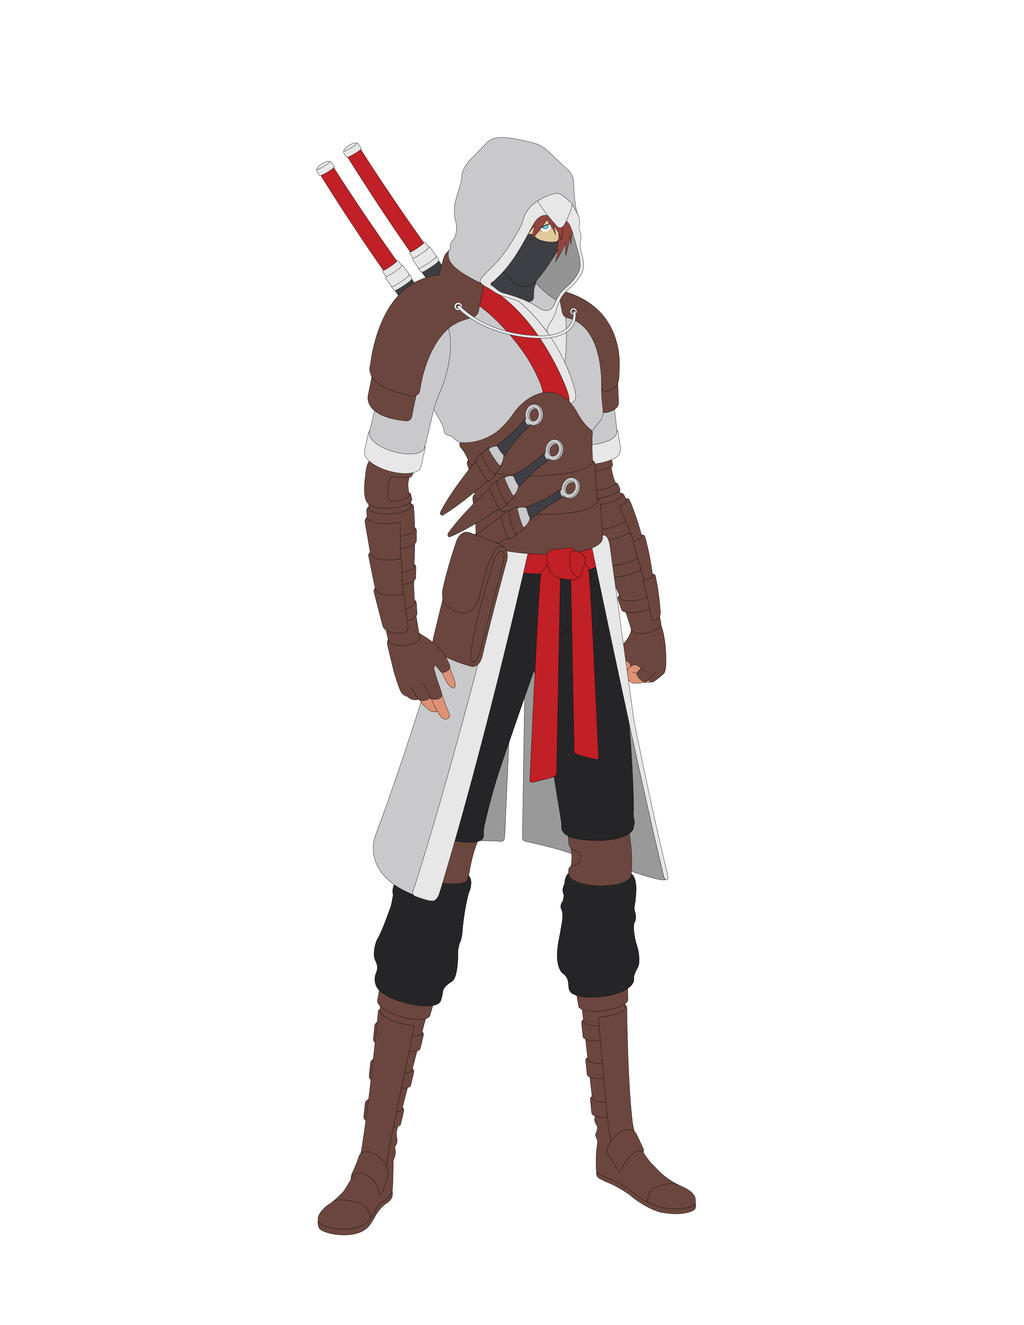 Assassins Creed Shinobi Concept Update - WIP by Jarein